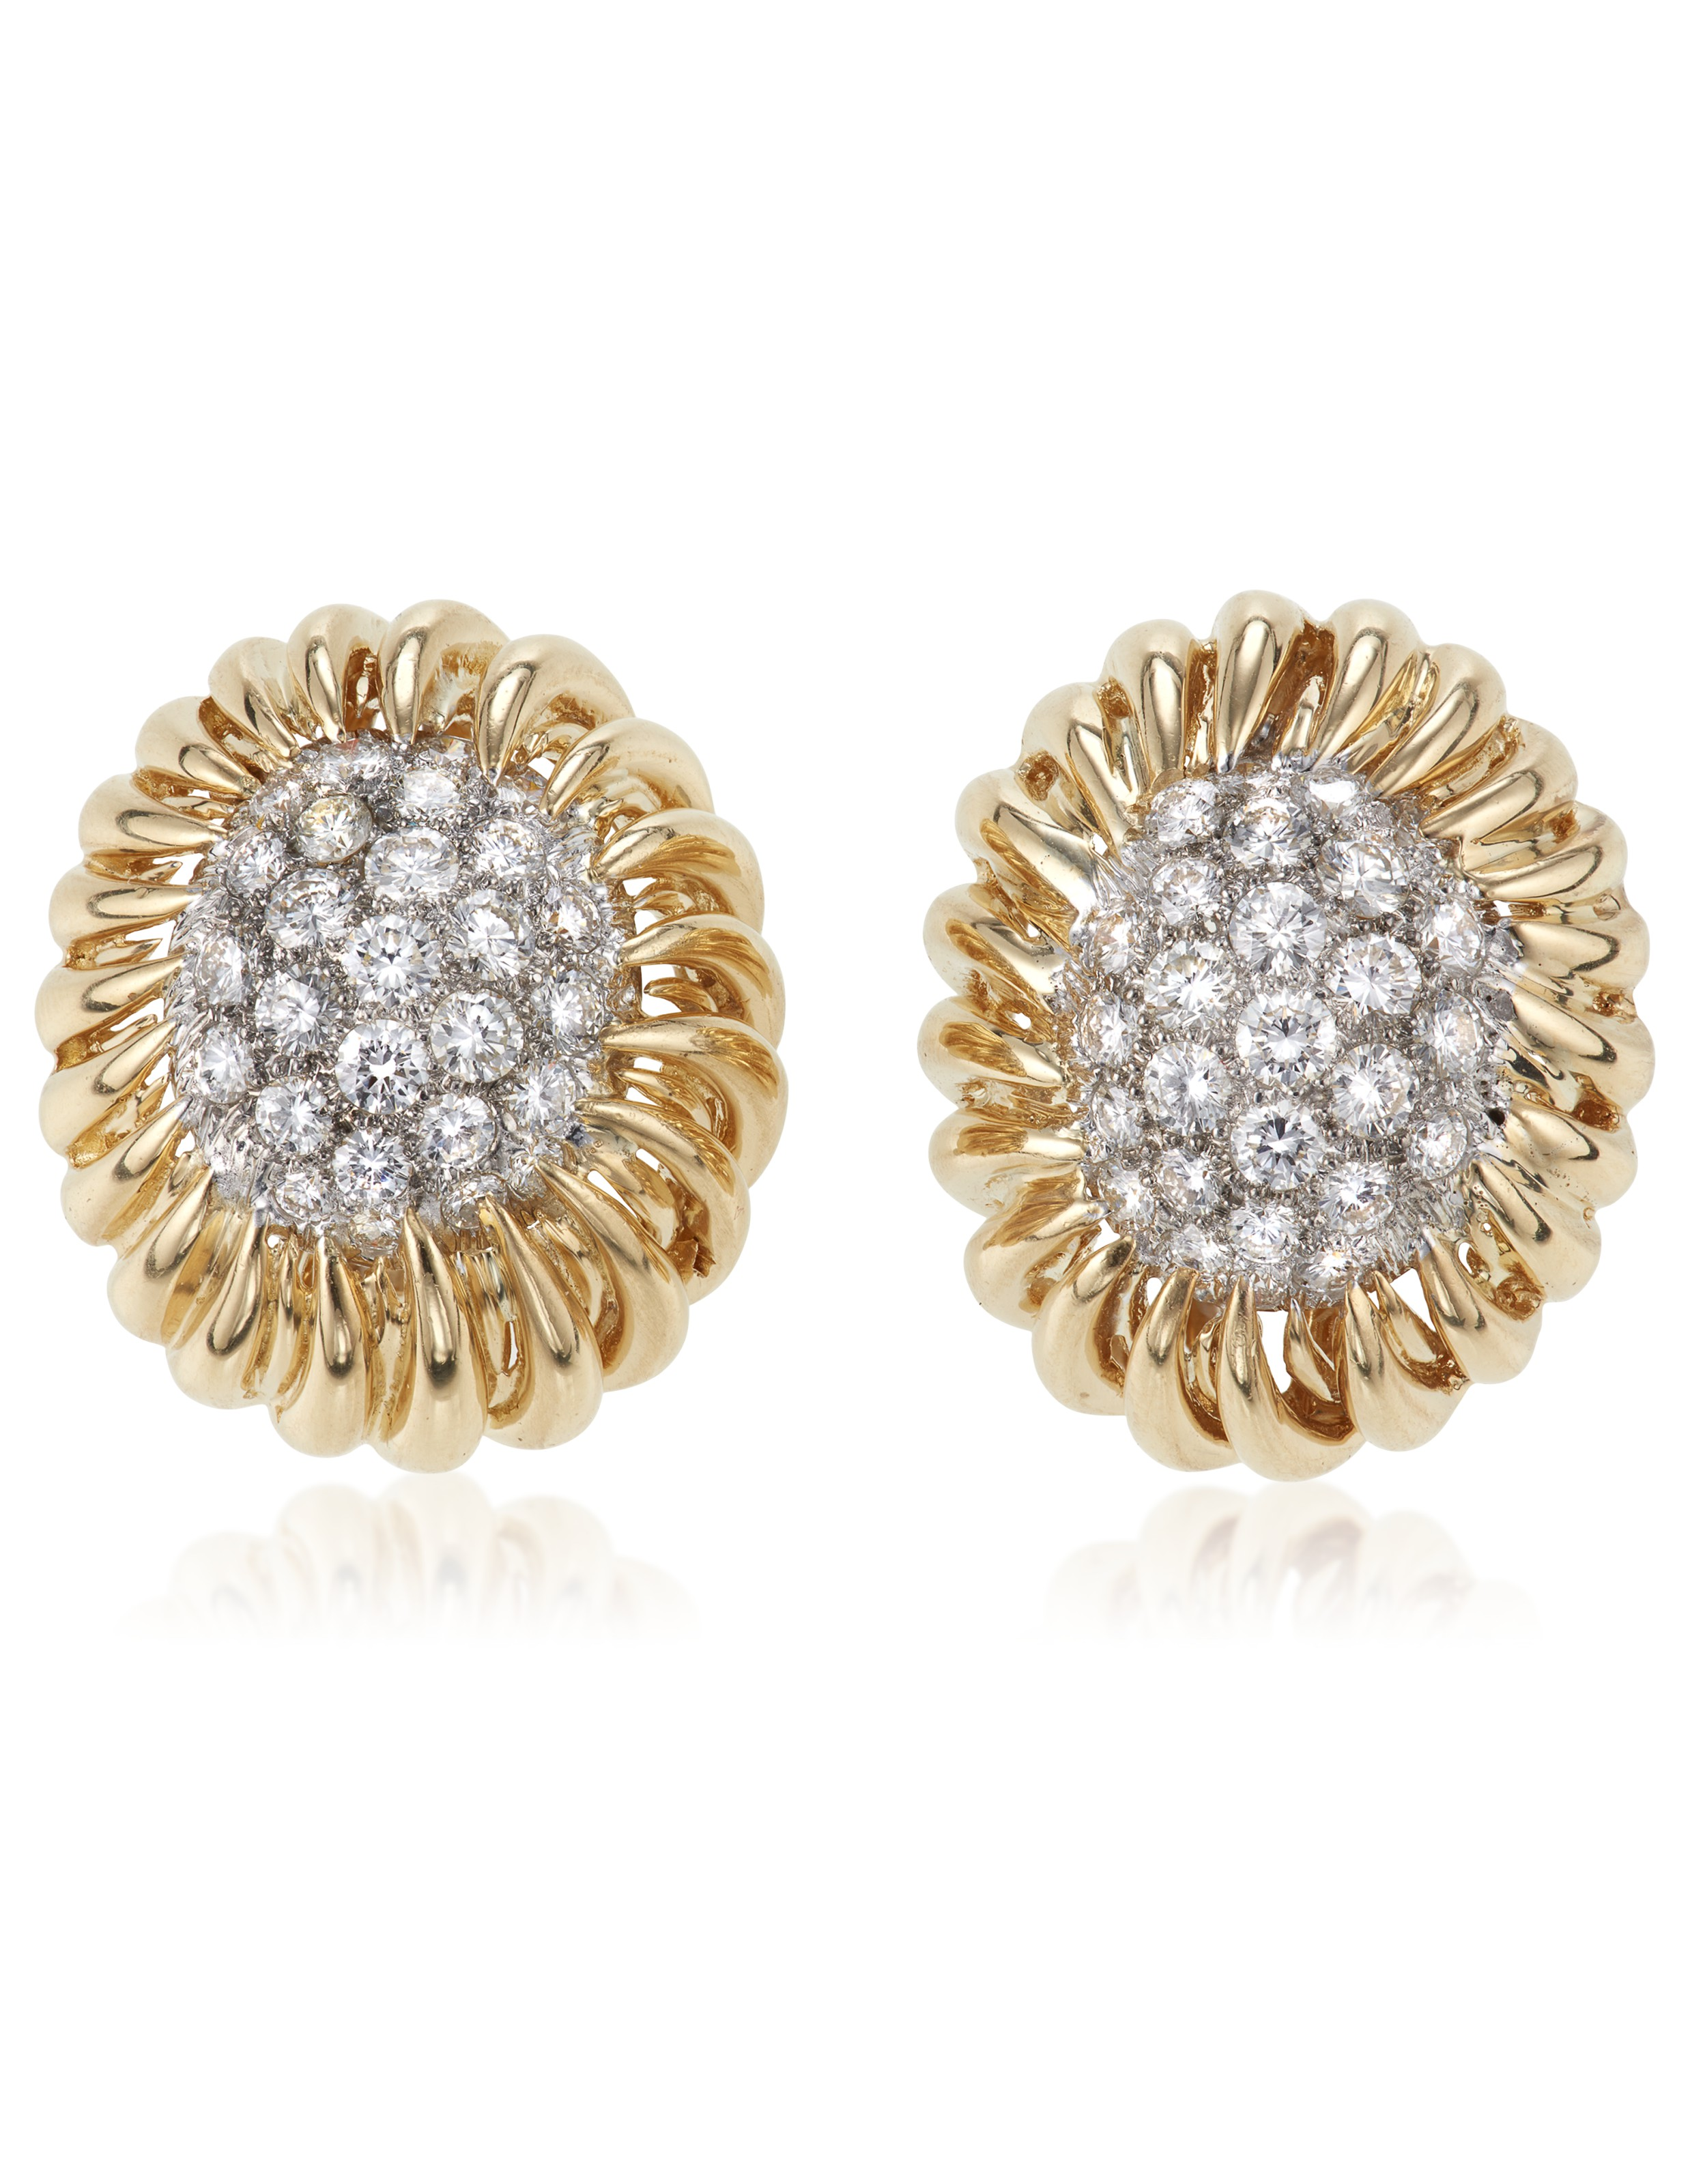 Gold and diamond earrings, by David Webb. Estimate $3,000-5,000. Offered in Jewels Online, until 10 February 2021, Online